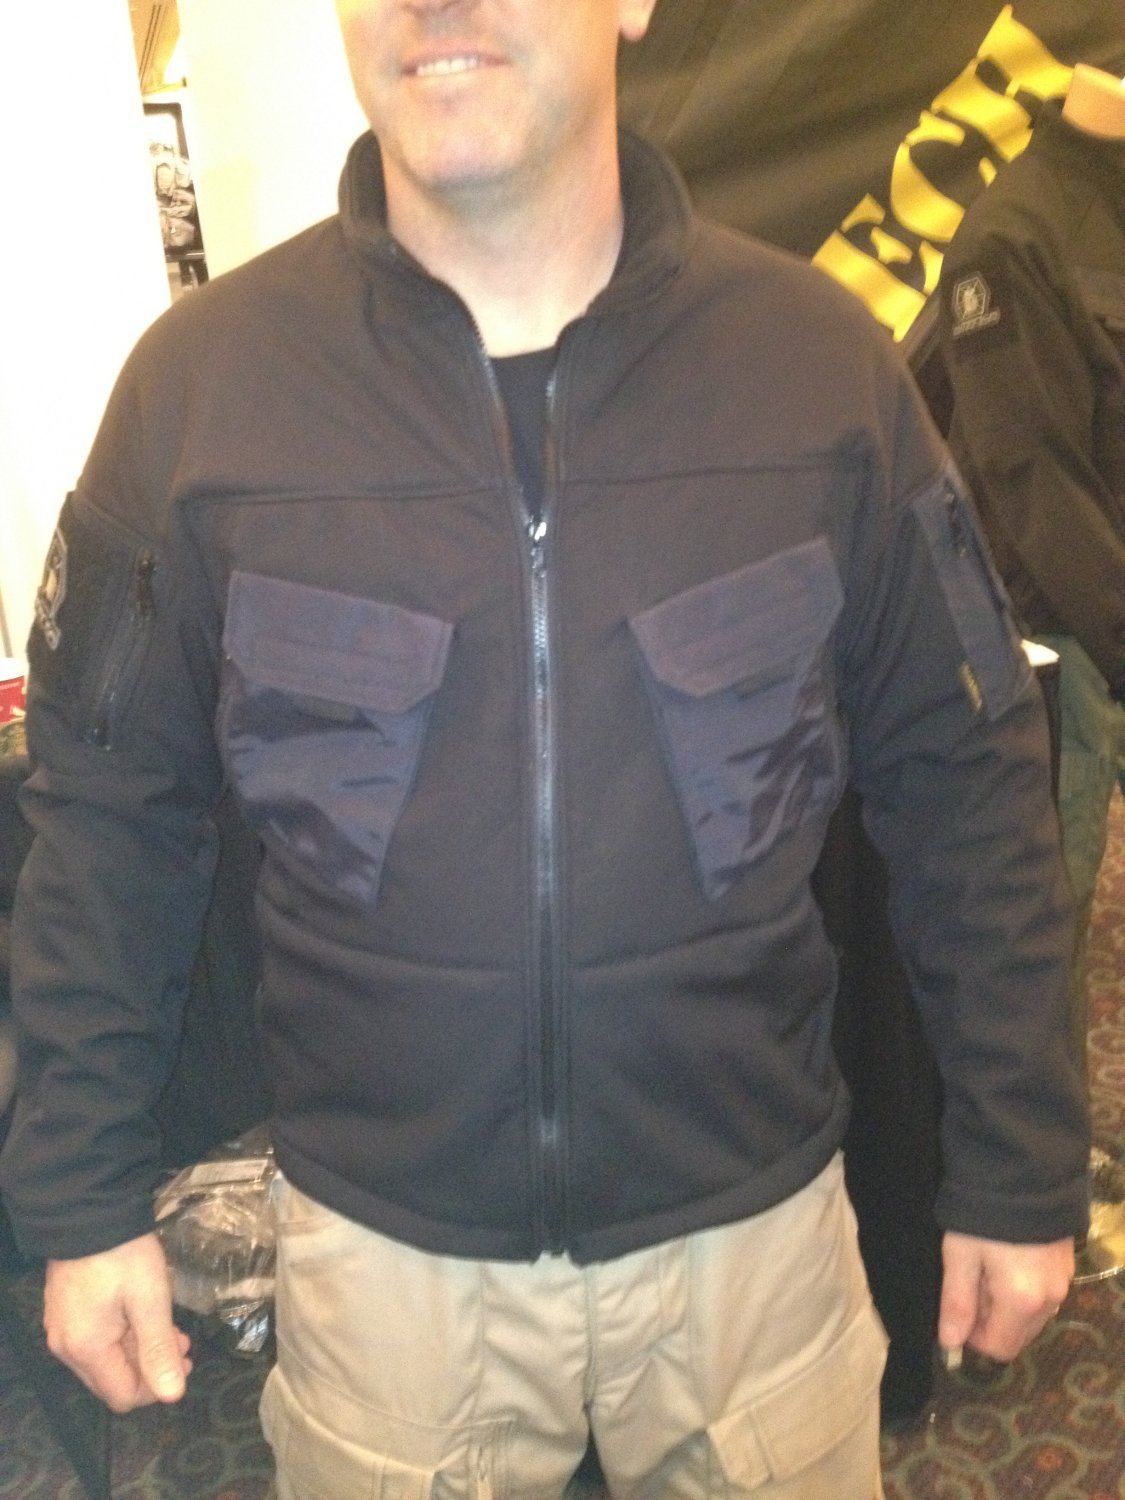 Kitanica Mark I MK1 Tactical Fleece Liner SHOT Show 2012 DefenseReview.com DR 1 Kitanica Mark V (MK5) Tactical Jacket with Textured Poron XRD Padding System for Civilian Tactical Shooters: The Latest Kitanica Advanced Tactical Apparel/Clothing Product (Video!)